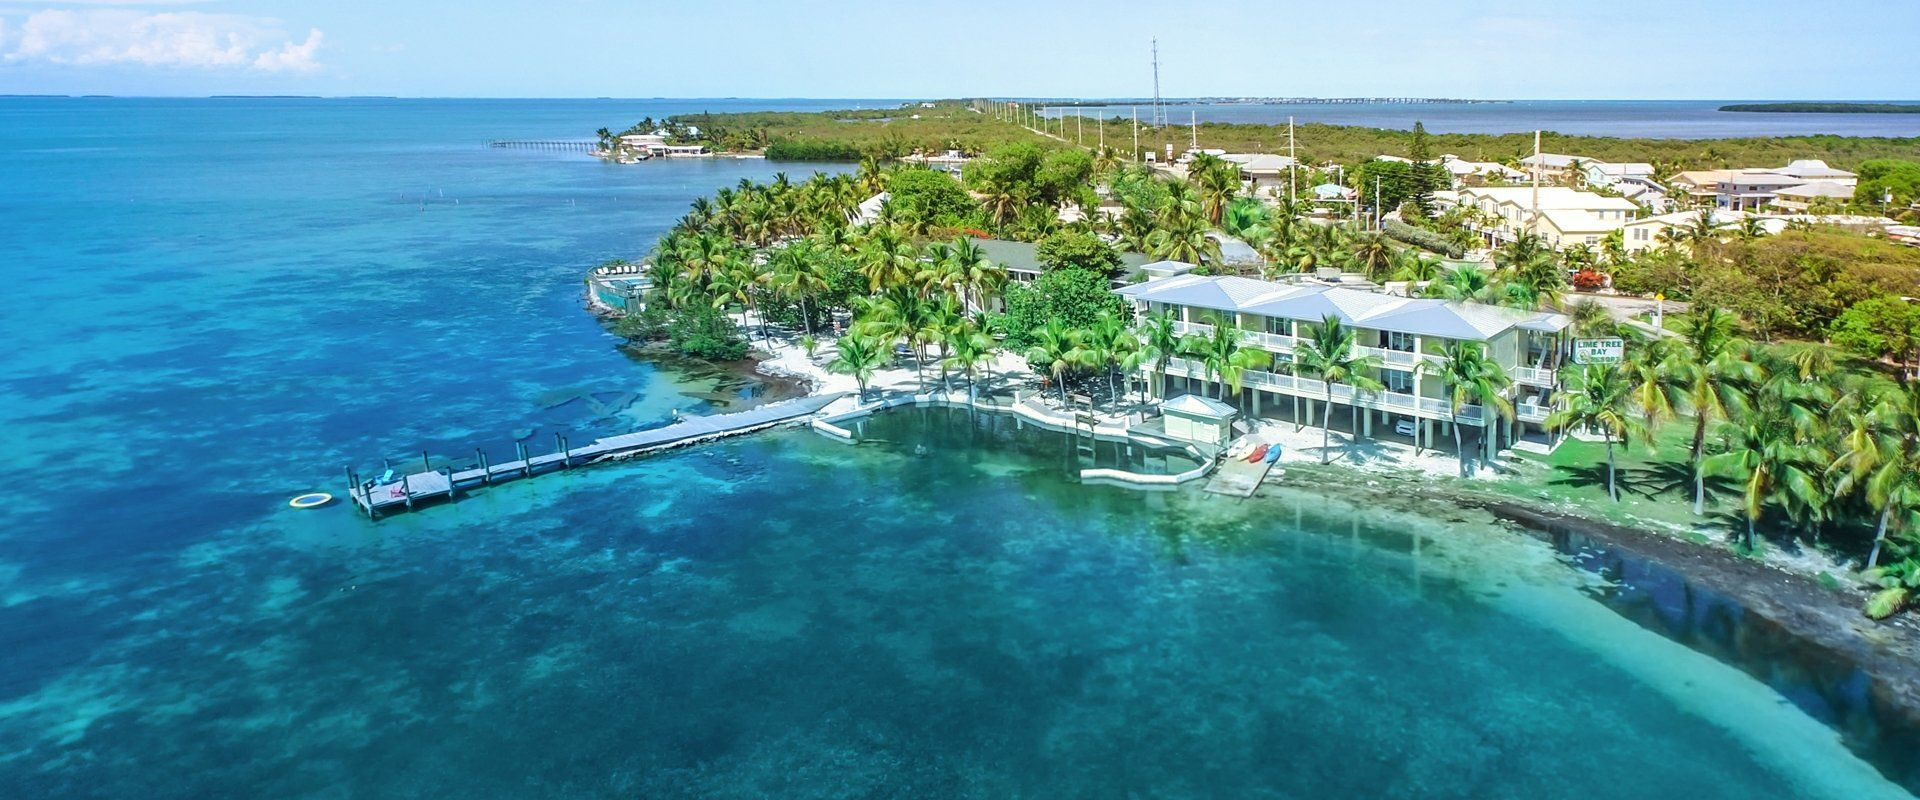 In the heart of the florida keys there is paradise